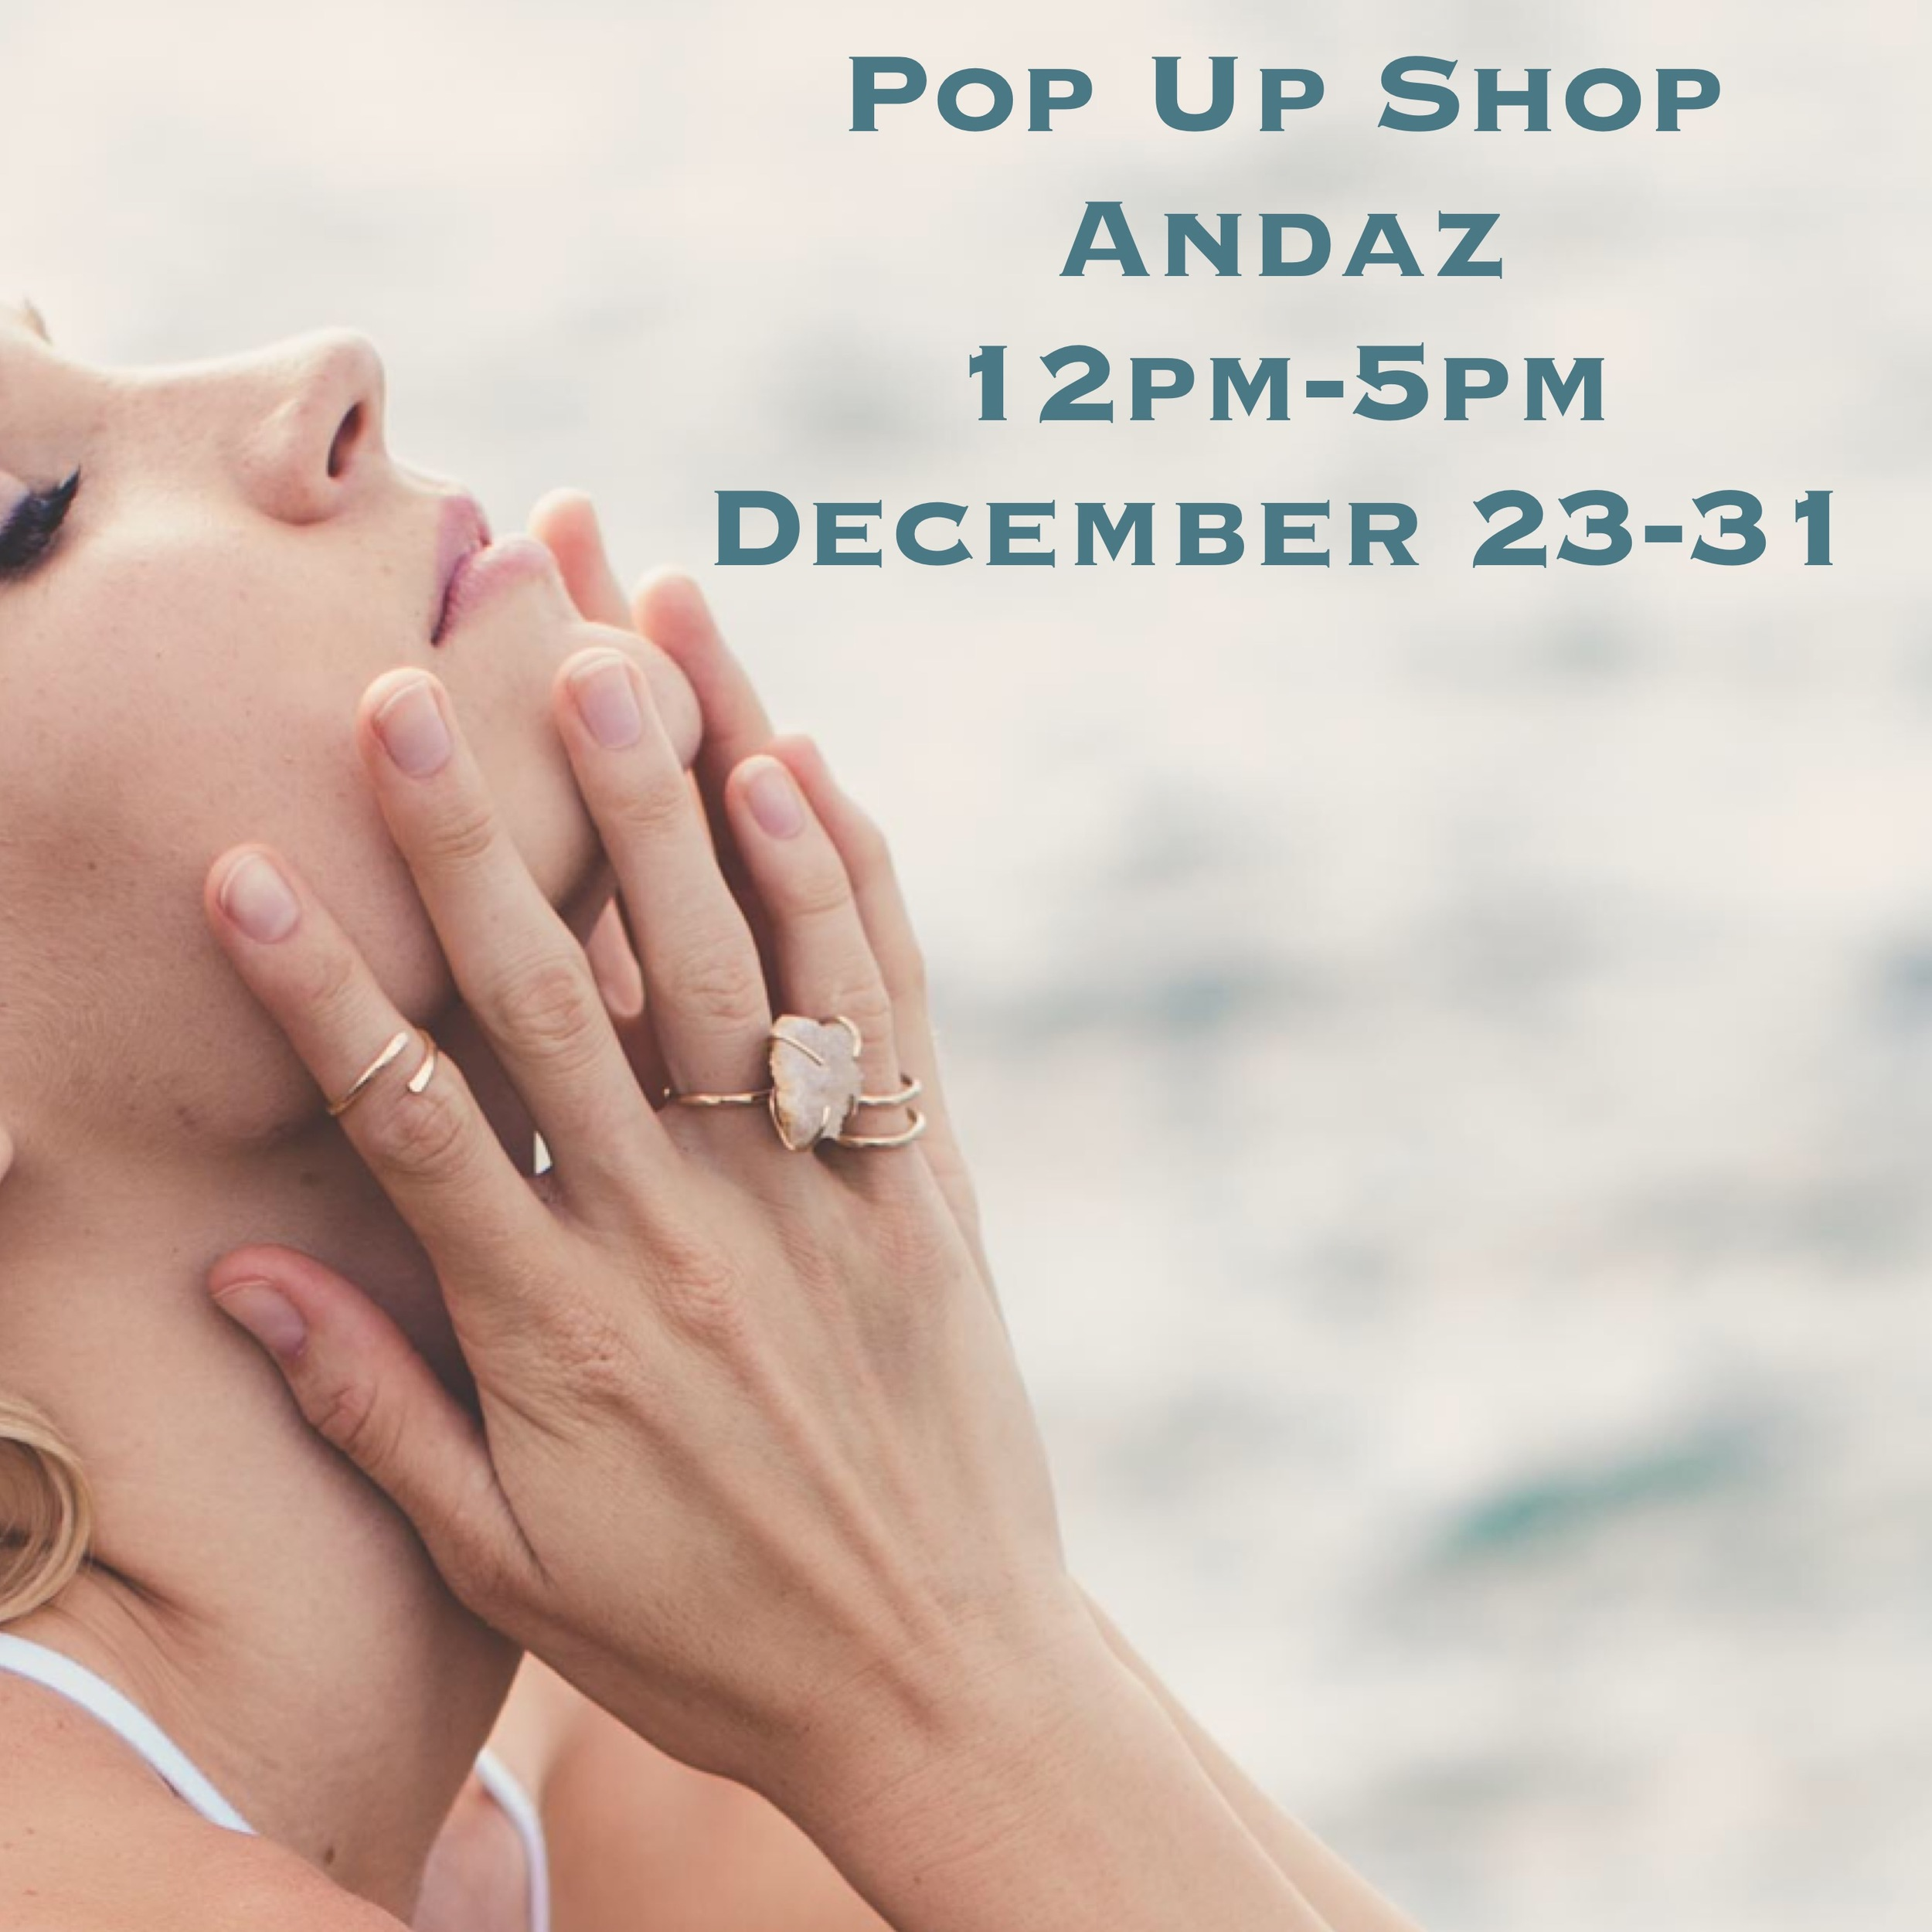 We will be at Andaz Wailea for their 8 Day Pop Up Shop from 12-5 starting December 23rd 2015. Come check us out and many other great Maui designers.